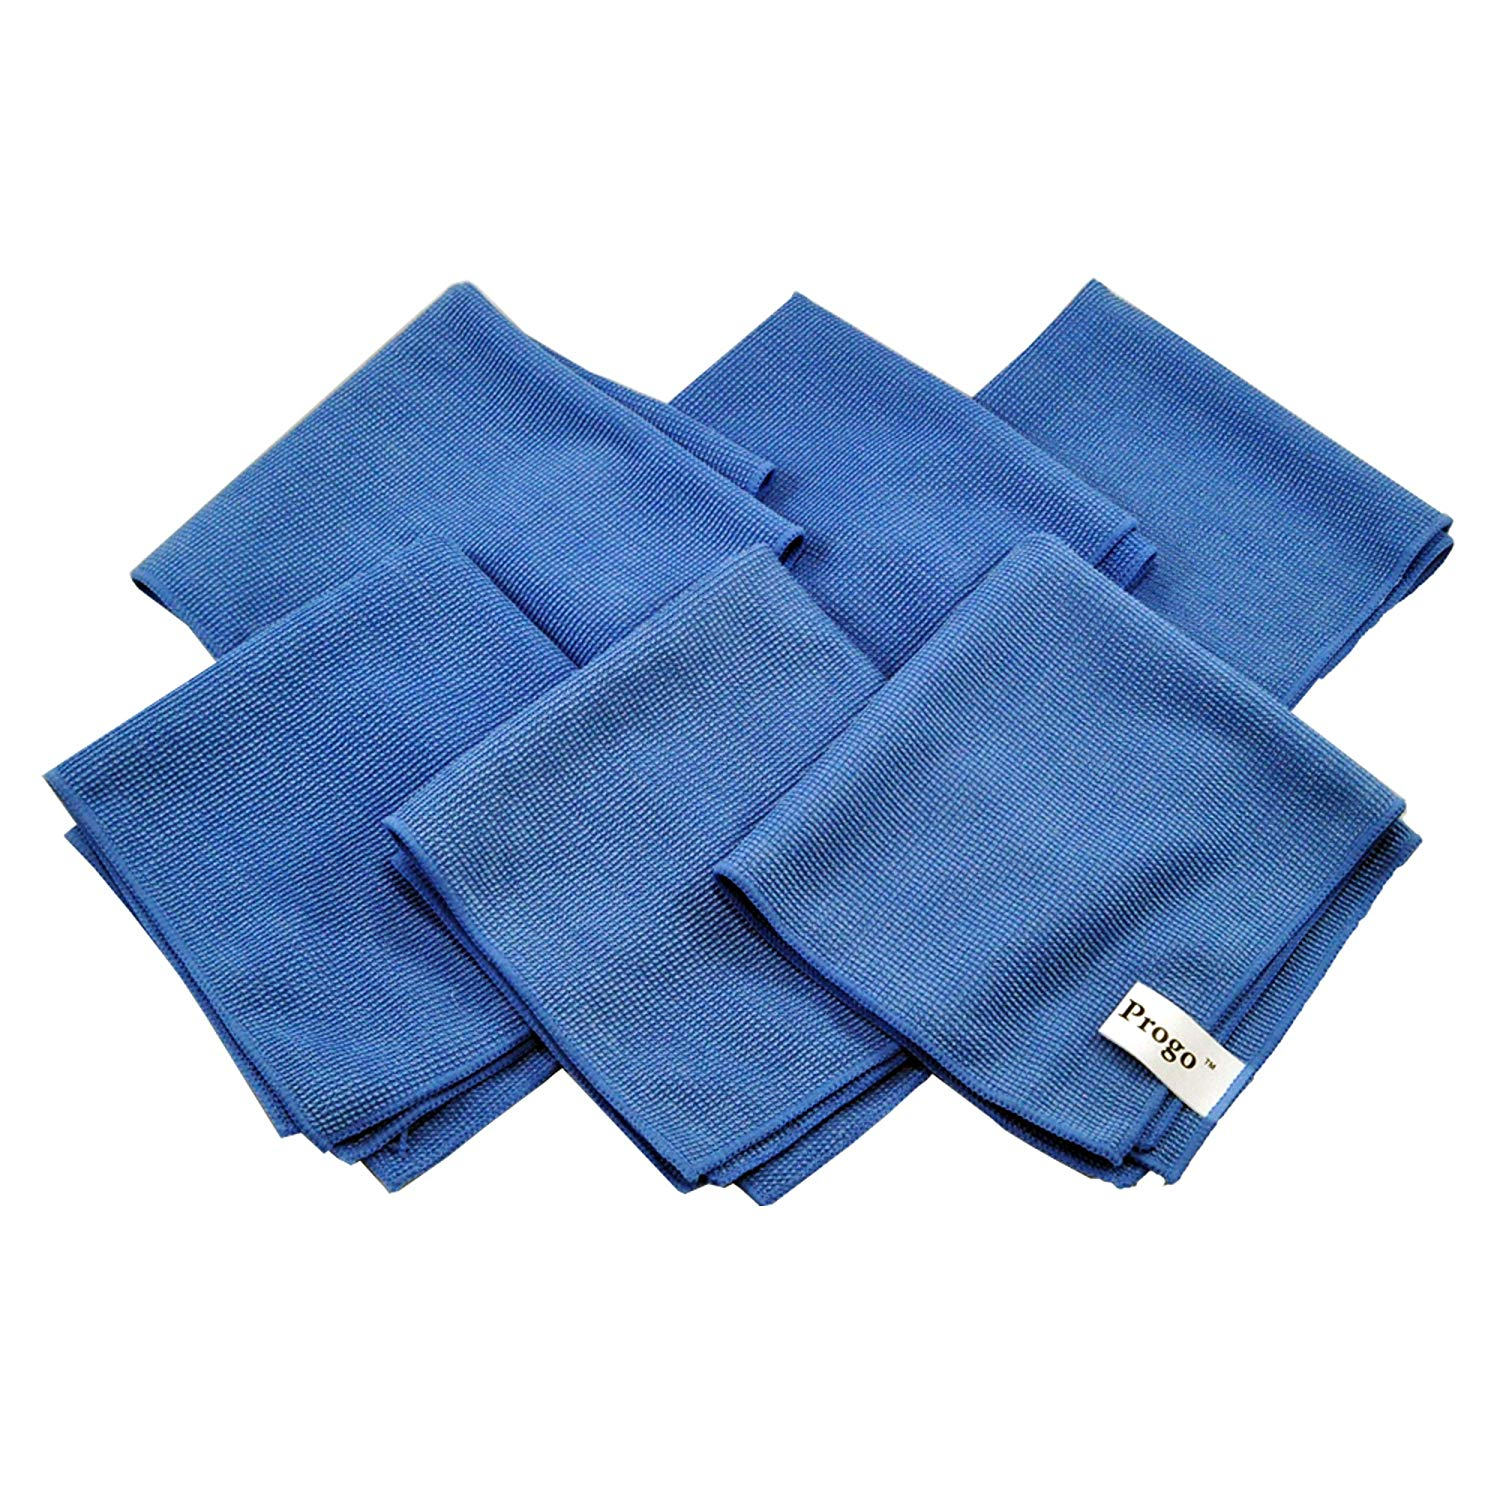 progo ultra absorbent cleaning cloths